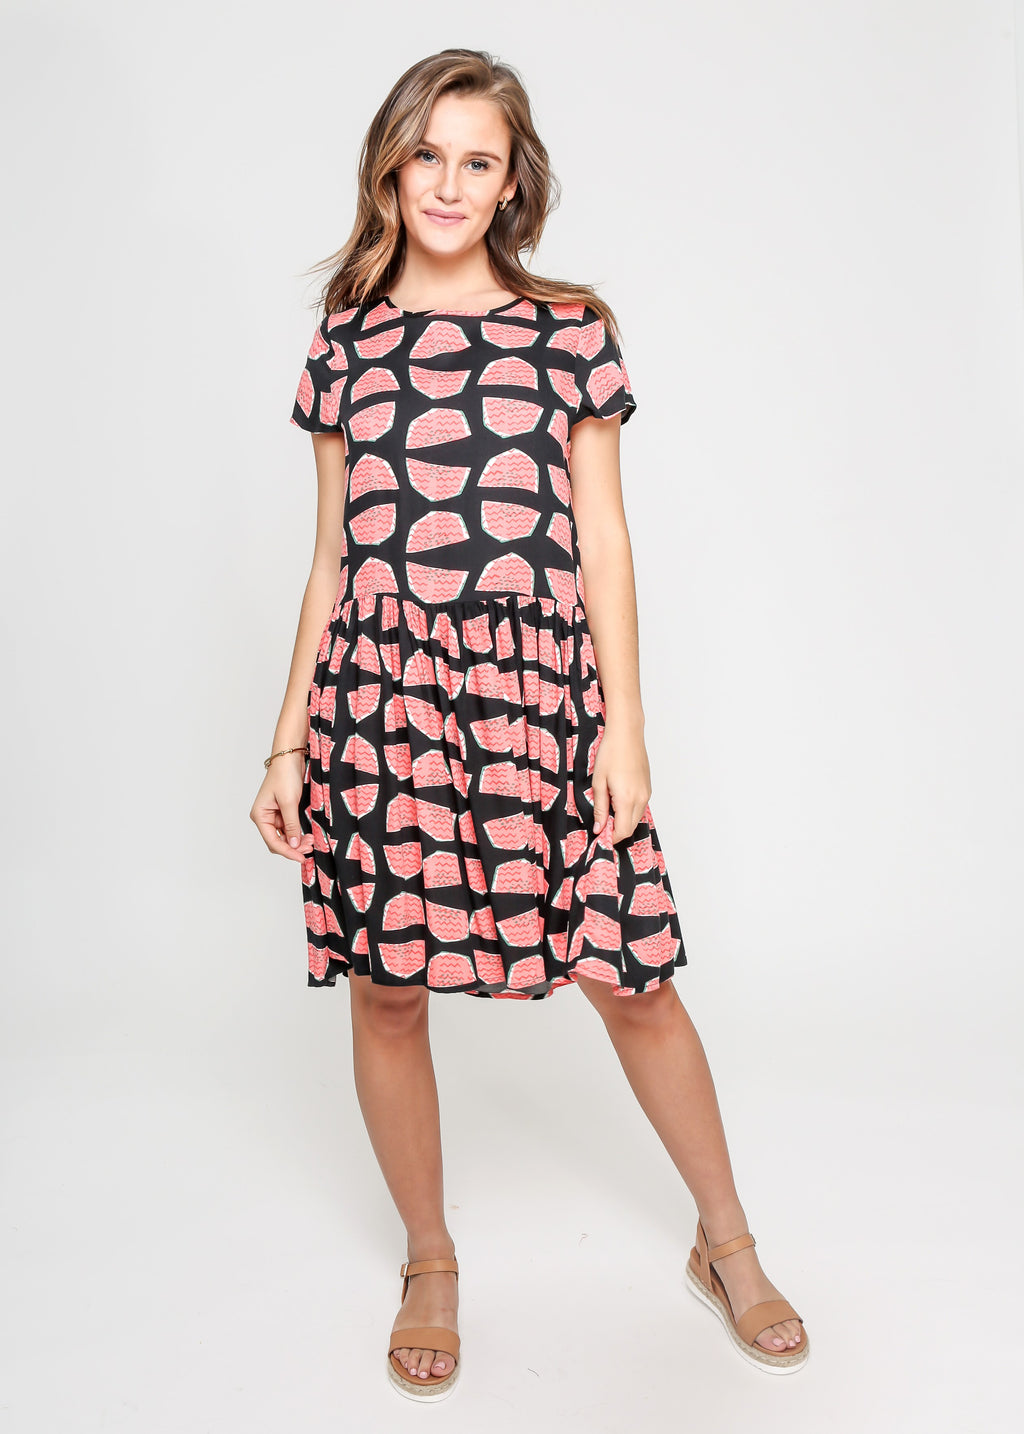 WATERMELON DRESS - BLACK